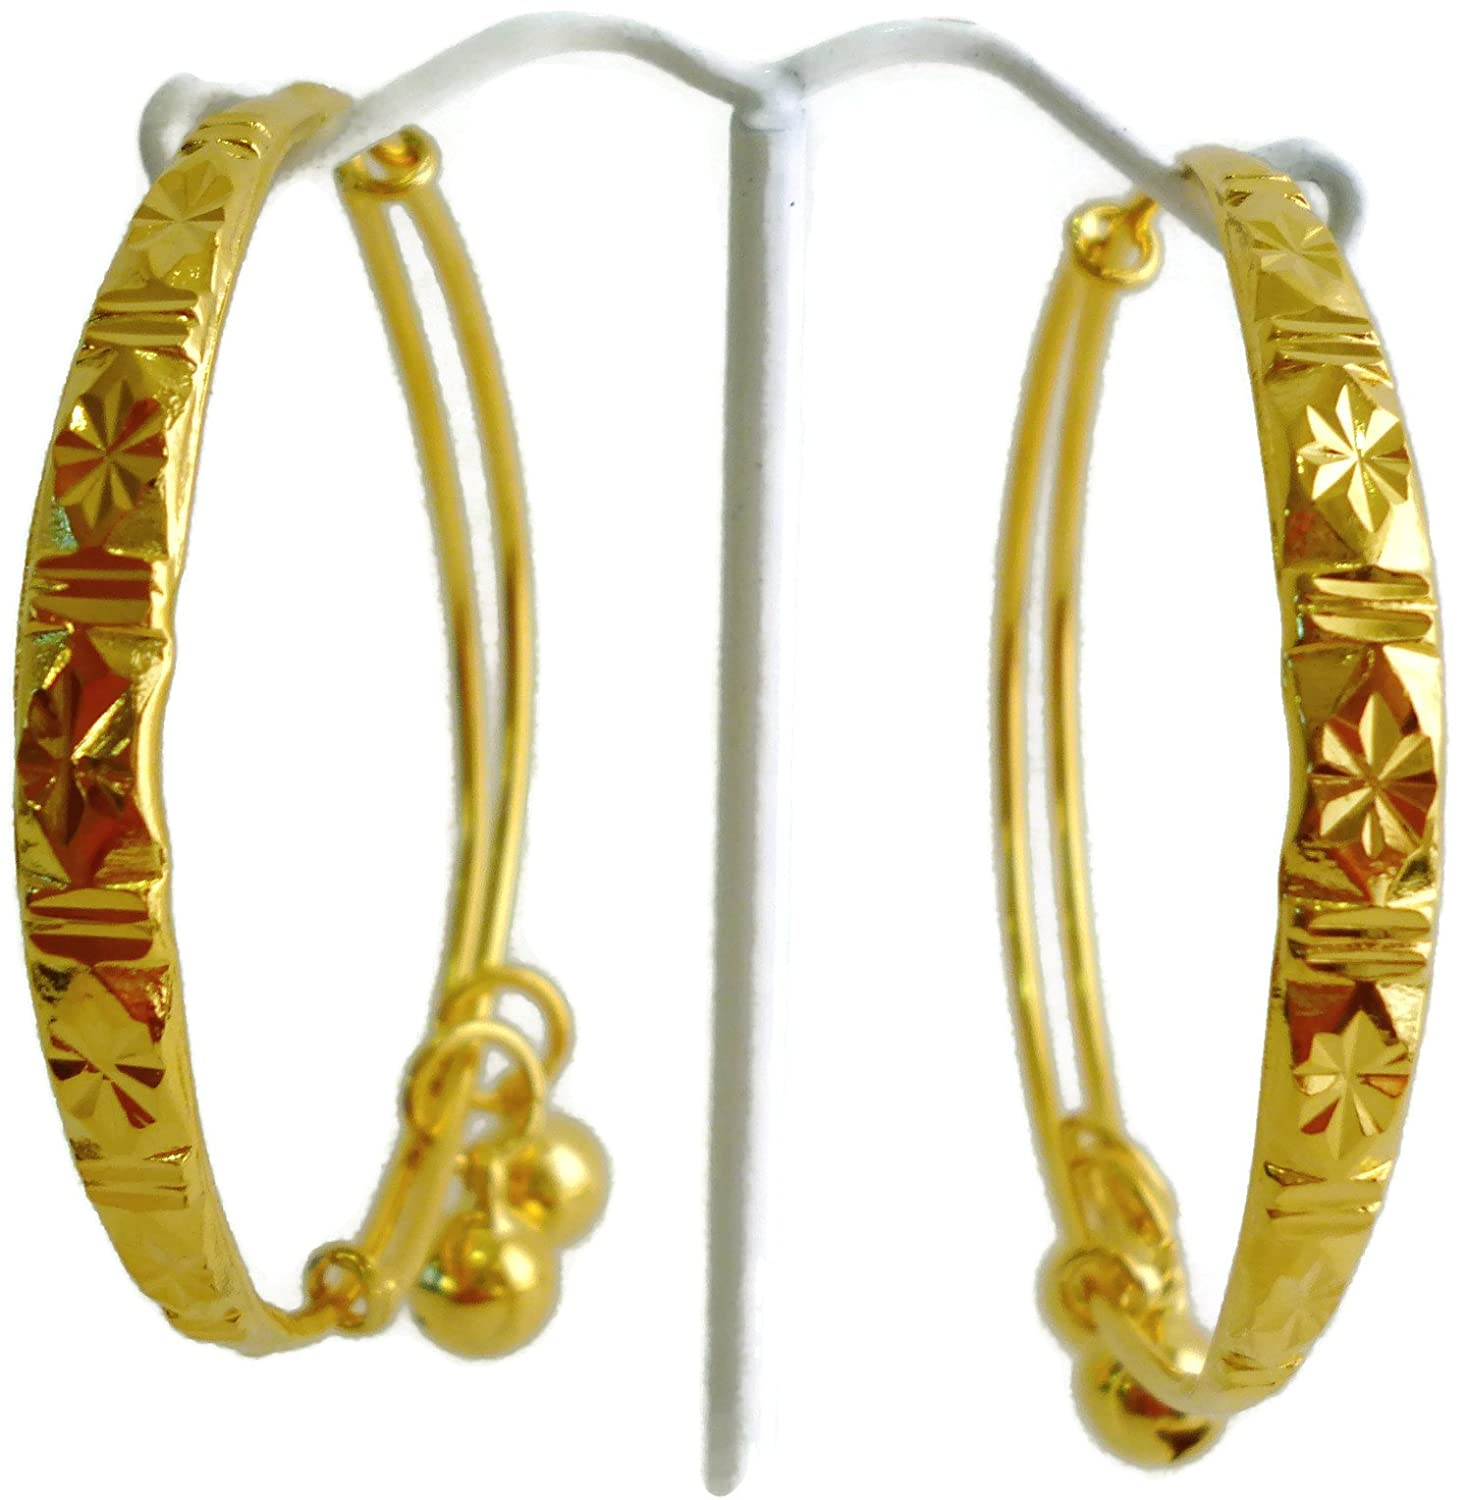 store studded dp gold and girls fashion low bangles jewellery for crystal at prices in amazon bangle online buy women bracelet plated india youbella